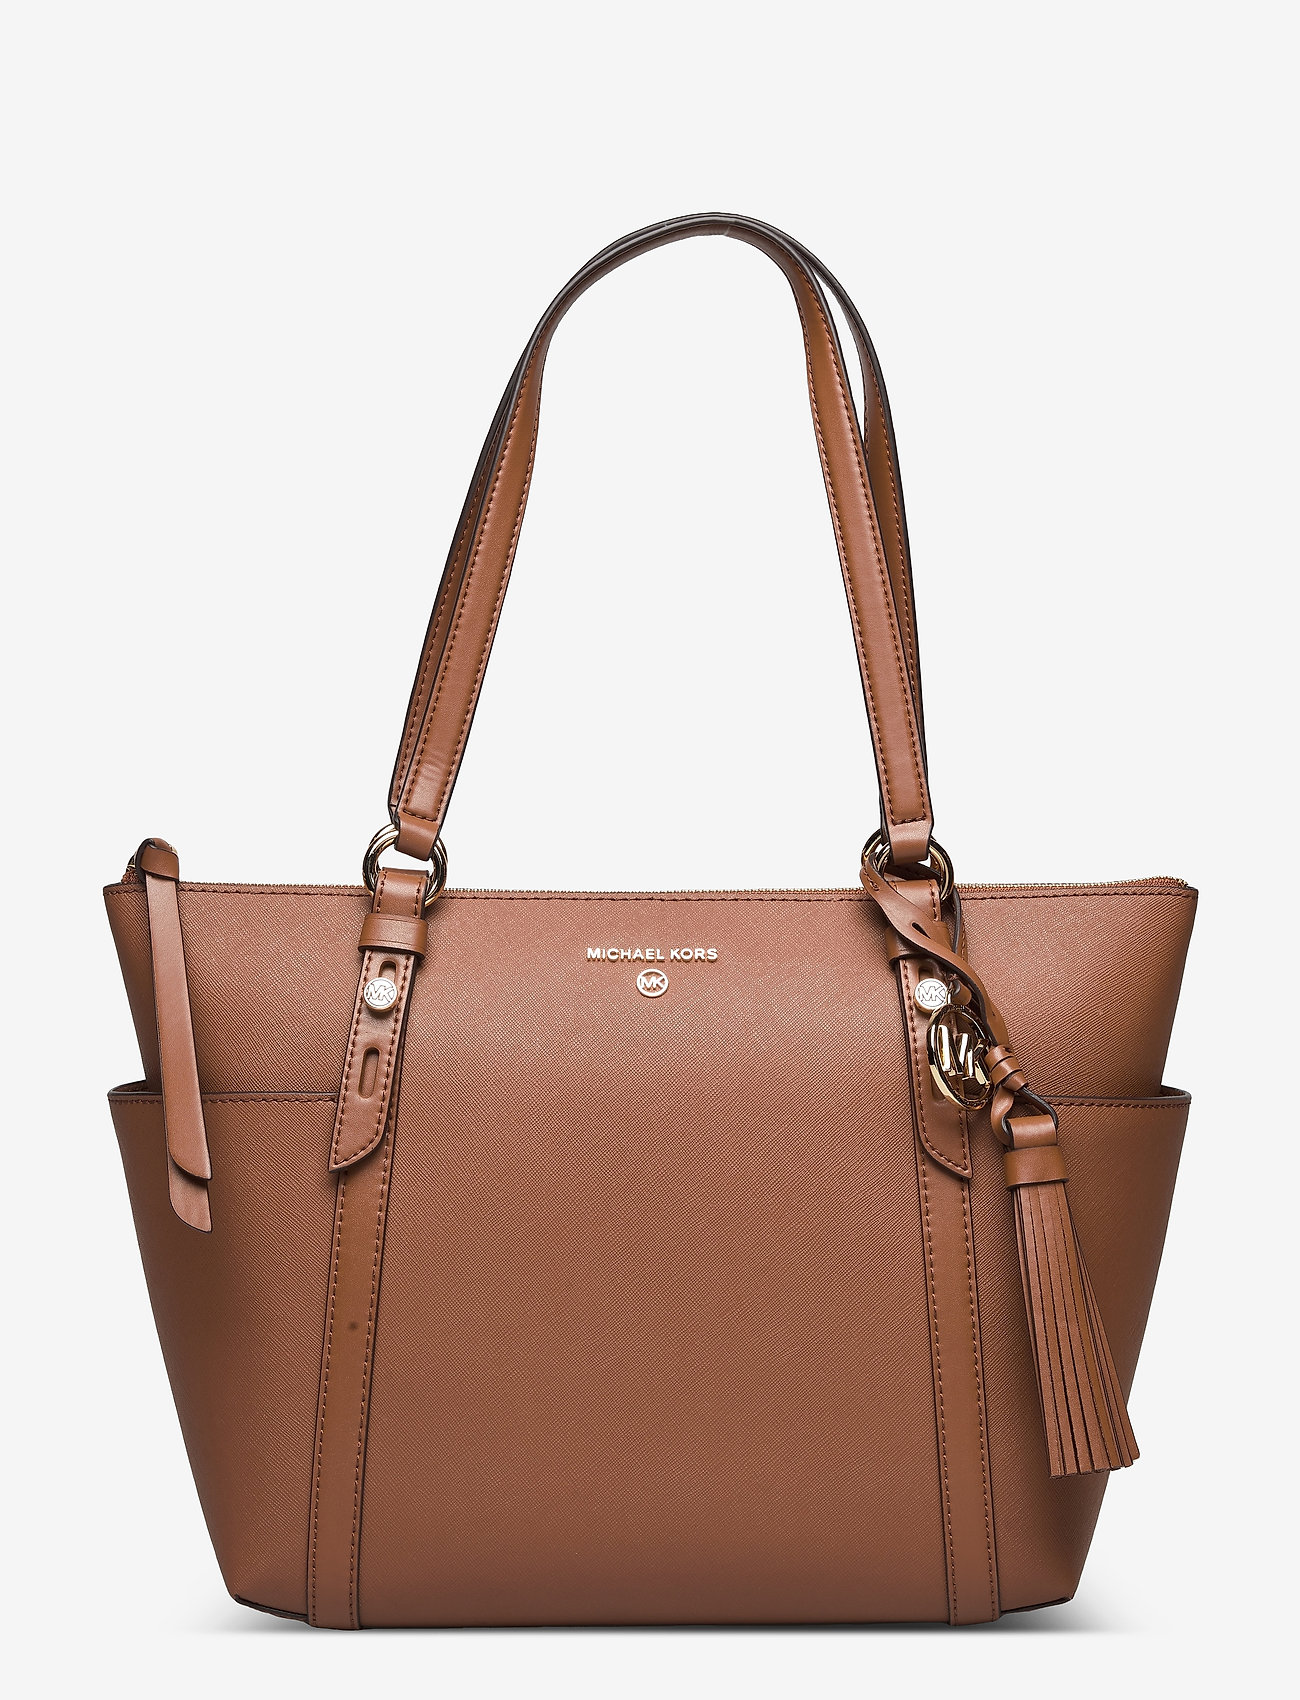 Michael Kors - SULLIVAN - shoppers - luggage - 0